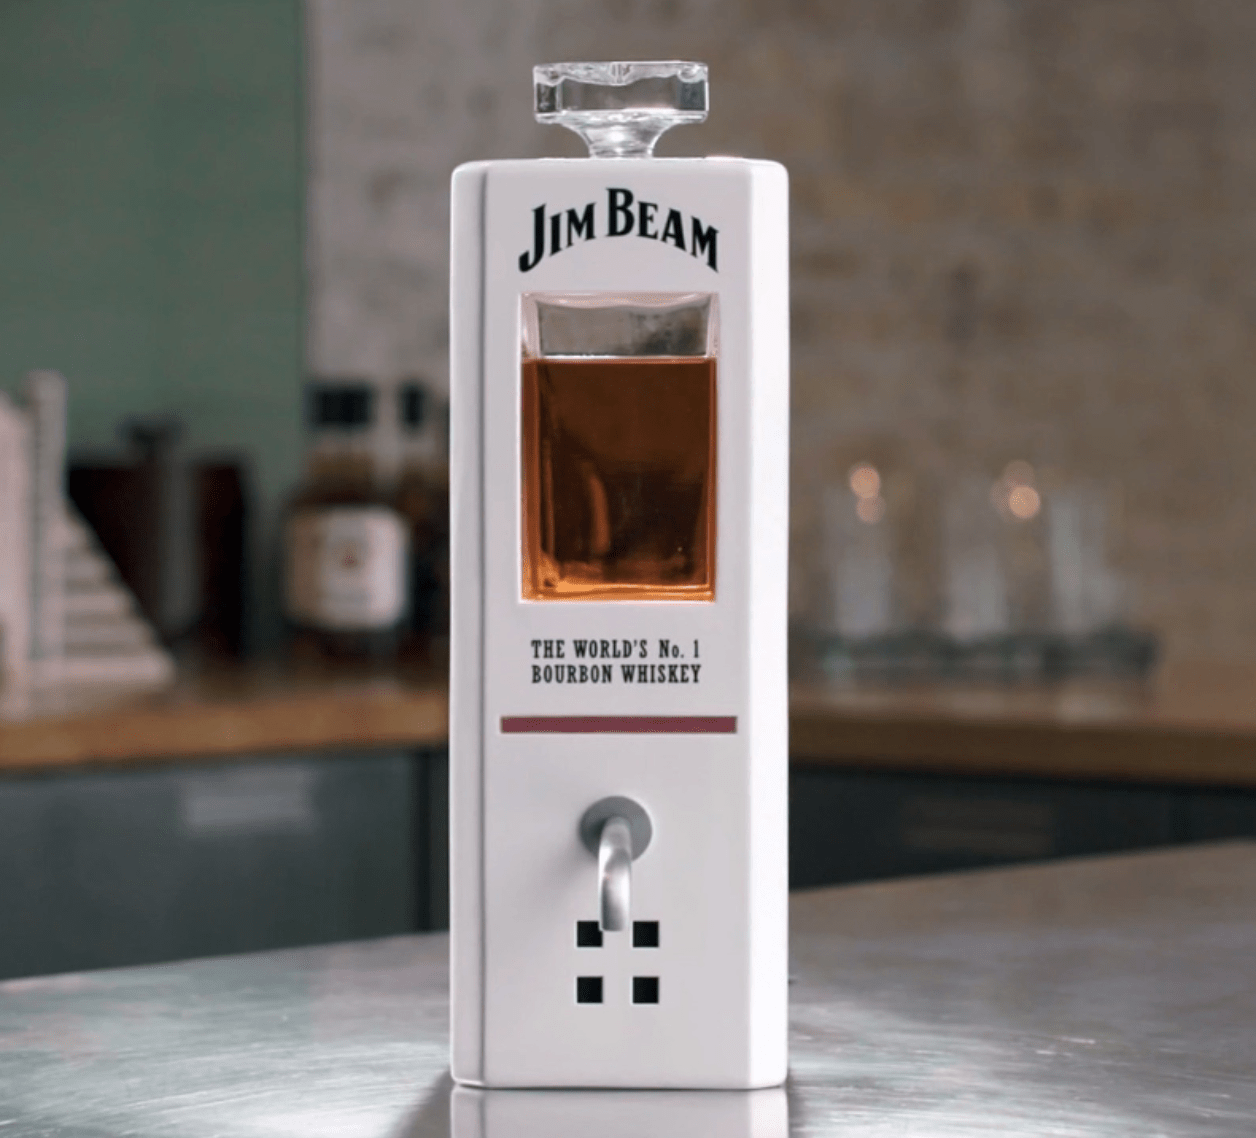 Jim Beam's Voice-Activated Decanter Will Pour You a Shot on Command